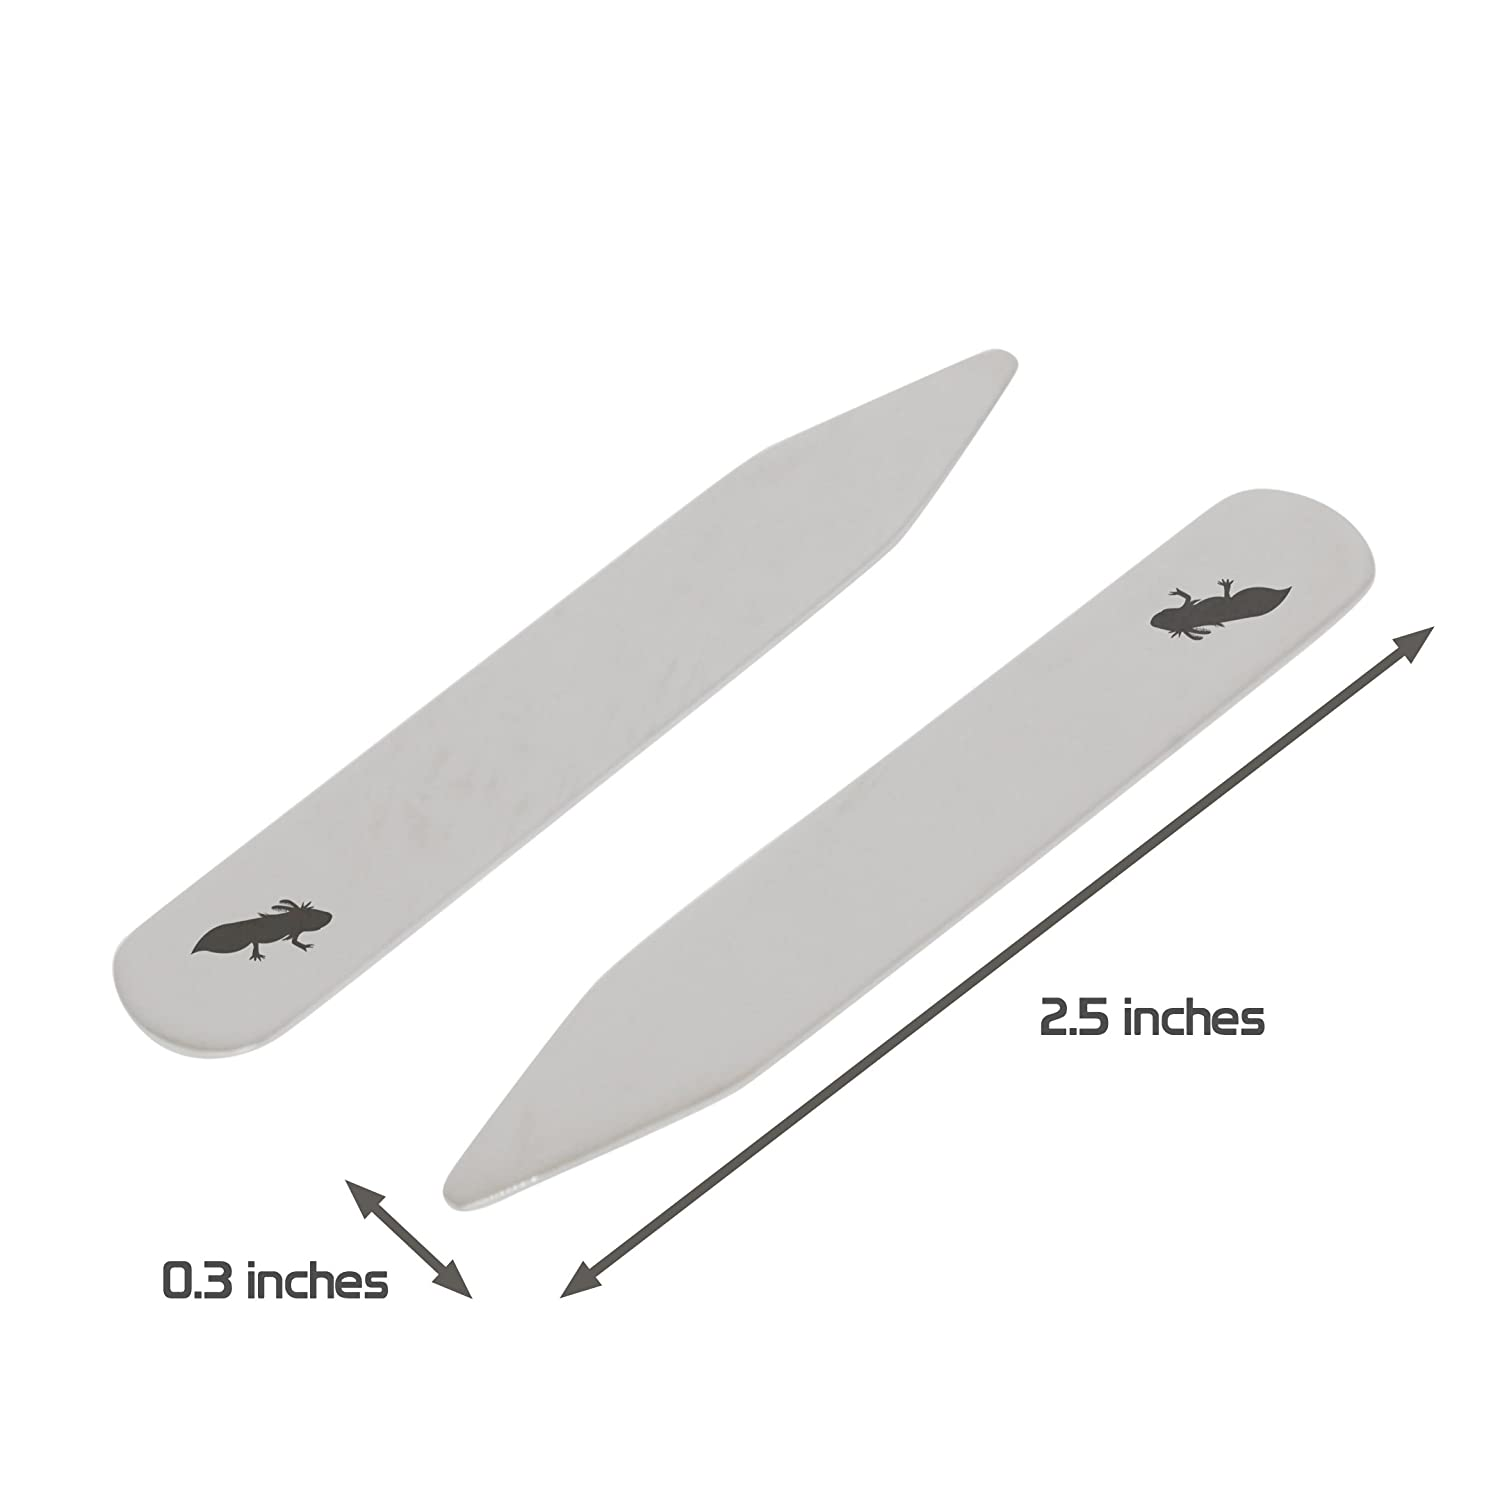 2.5 Inch Metal Collar Stiffeners Made In USA MODERN GOODS SHOP Stainless Steel Collar Stays With Laser Engraved Axolotl Design